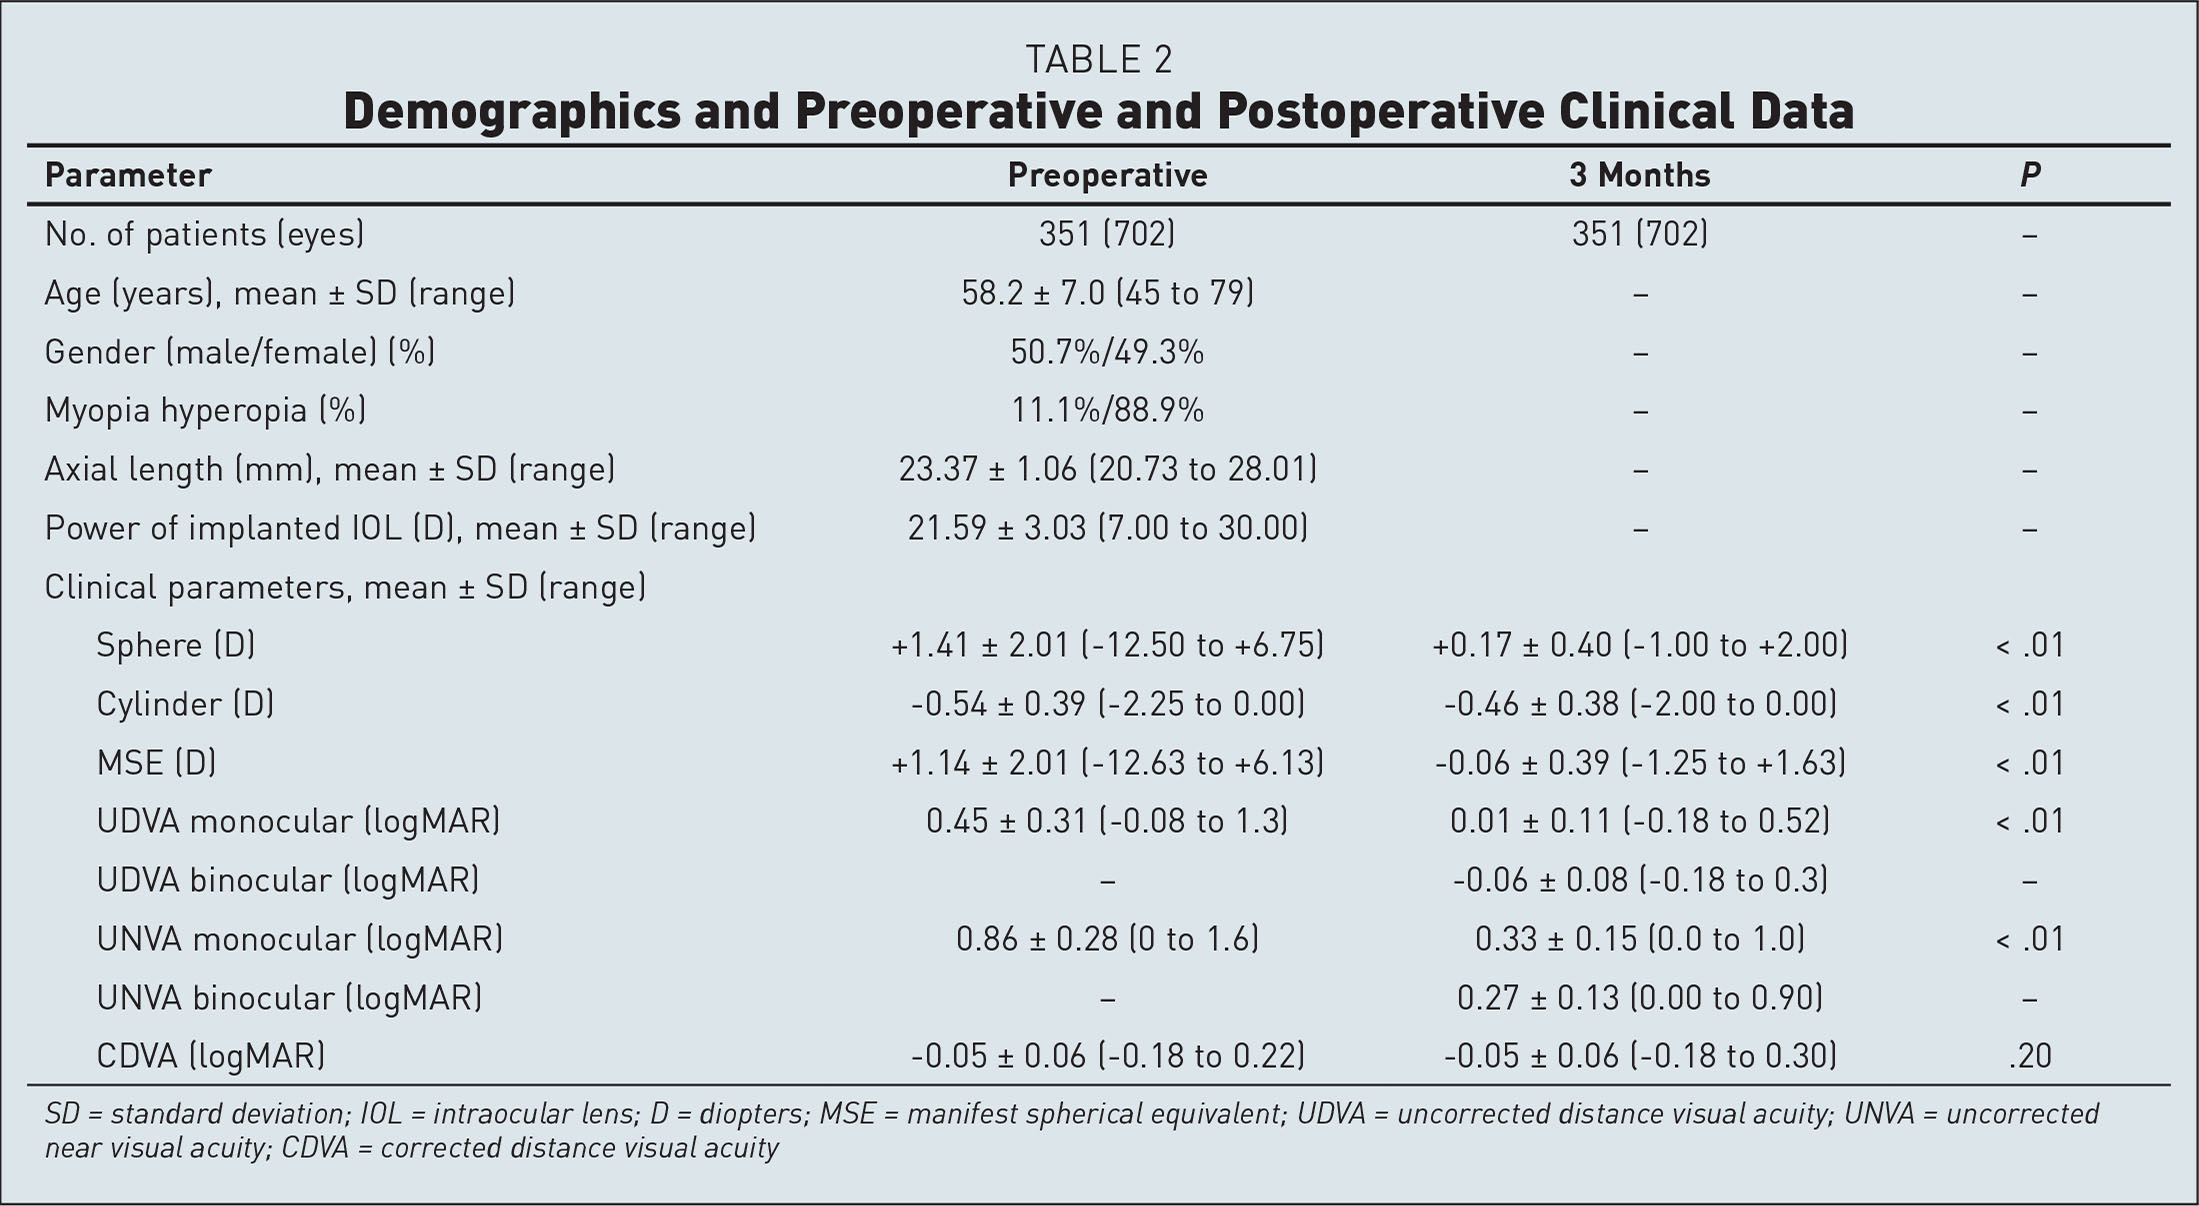 Demographics and Preoperative and Postoperative Clinical Data